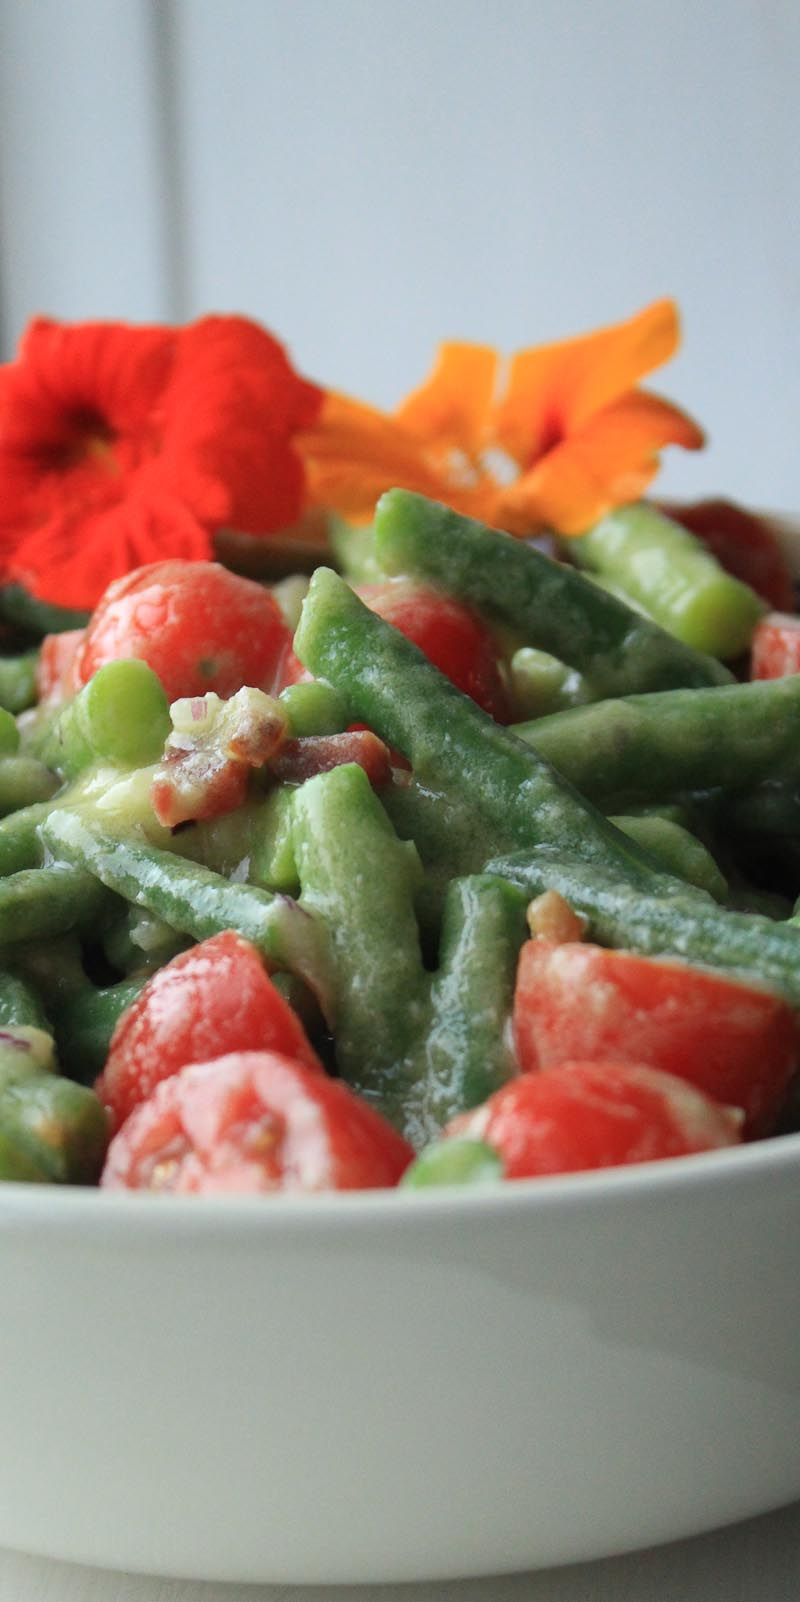 Green beans and tomato salad - Italian Notes